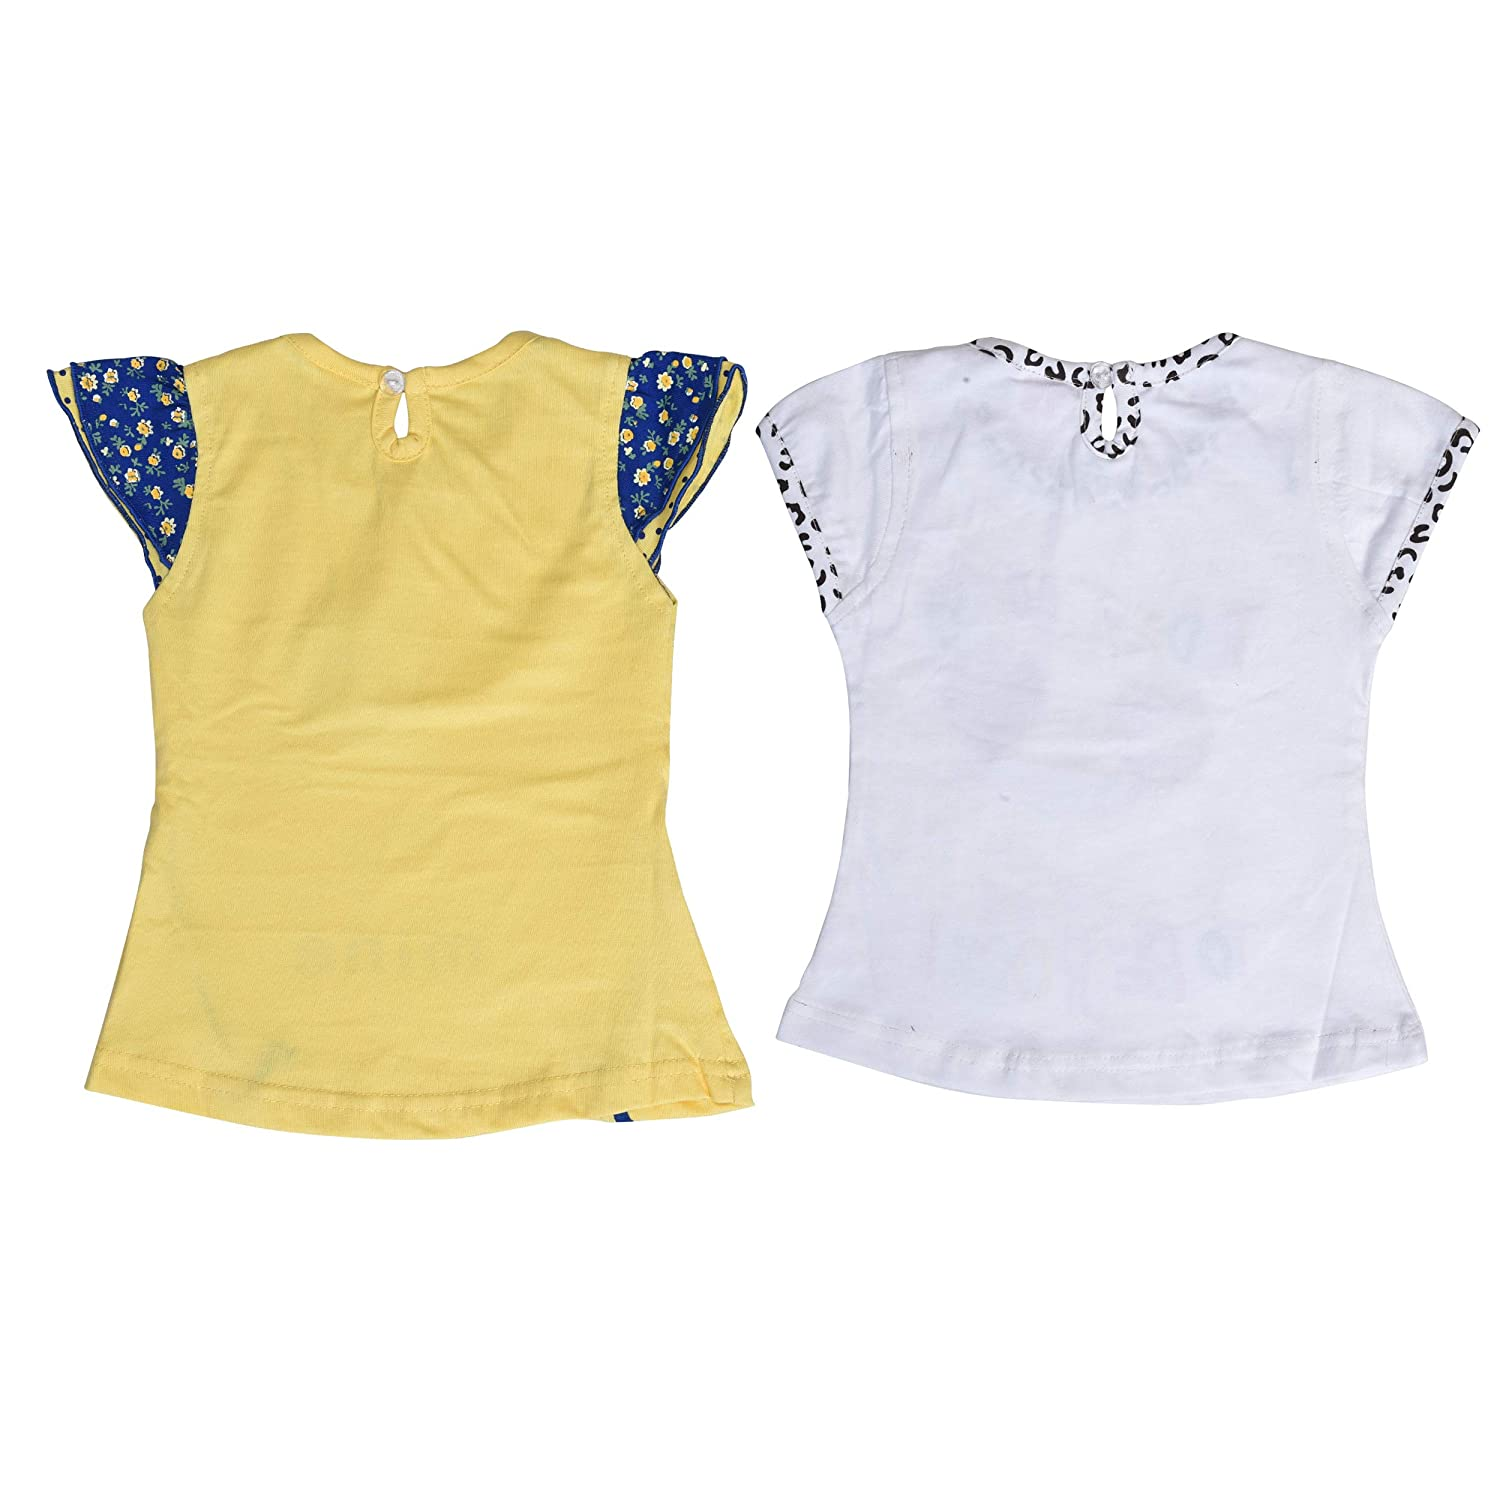 e5f27aeaab50 Roble Fashion Baby Girls Infant T-Shirt and Hot Pant Set for Kids 6 ...